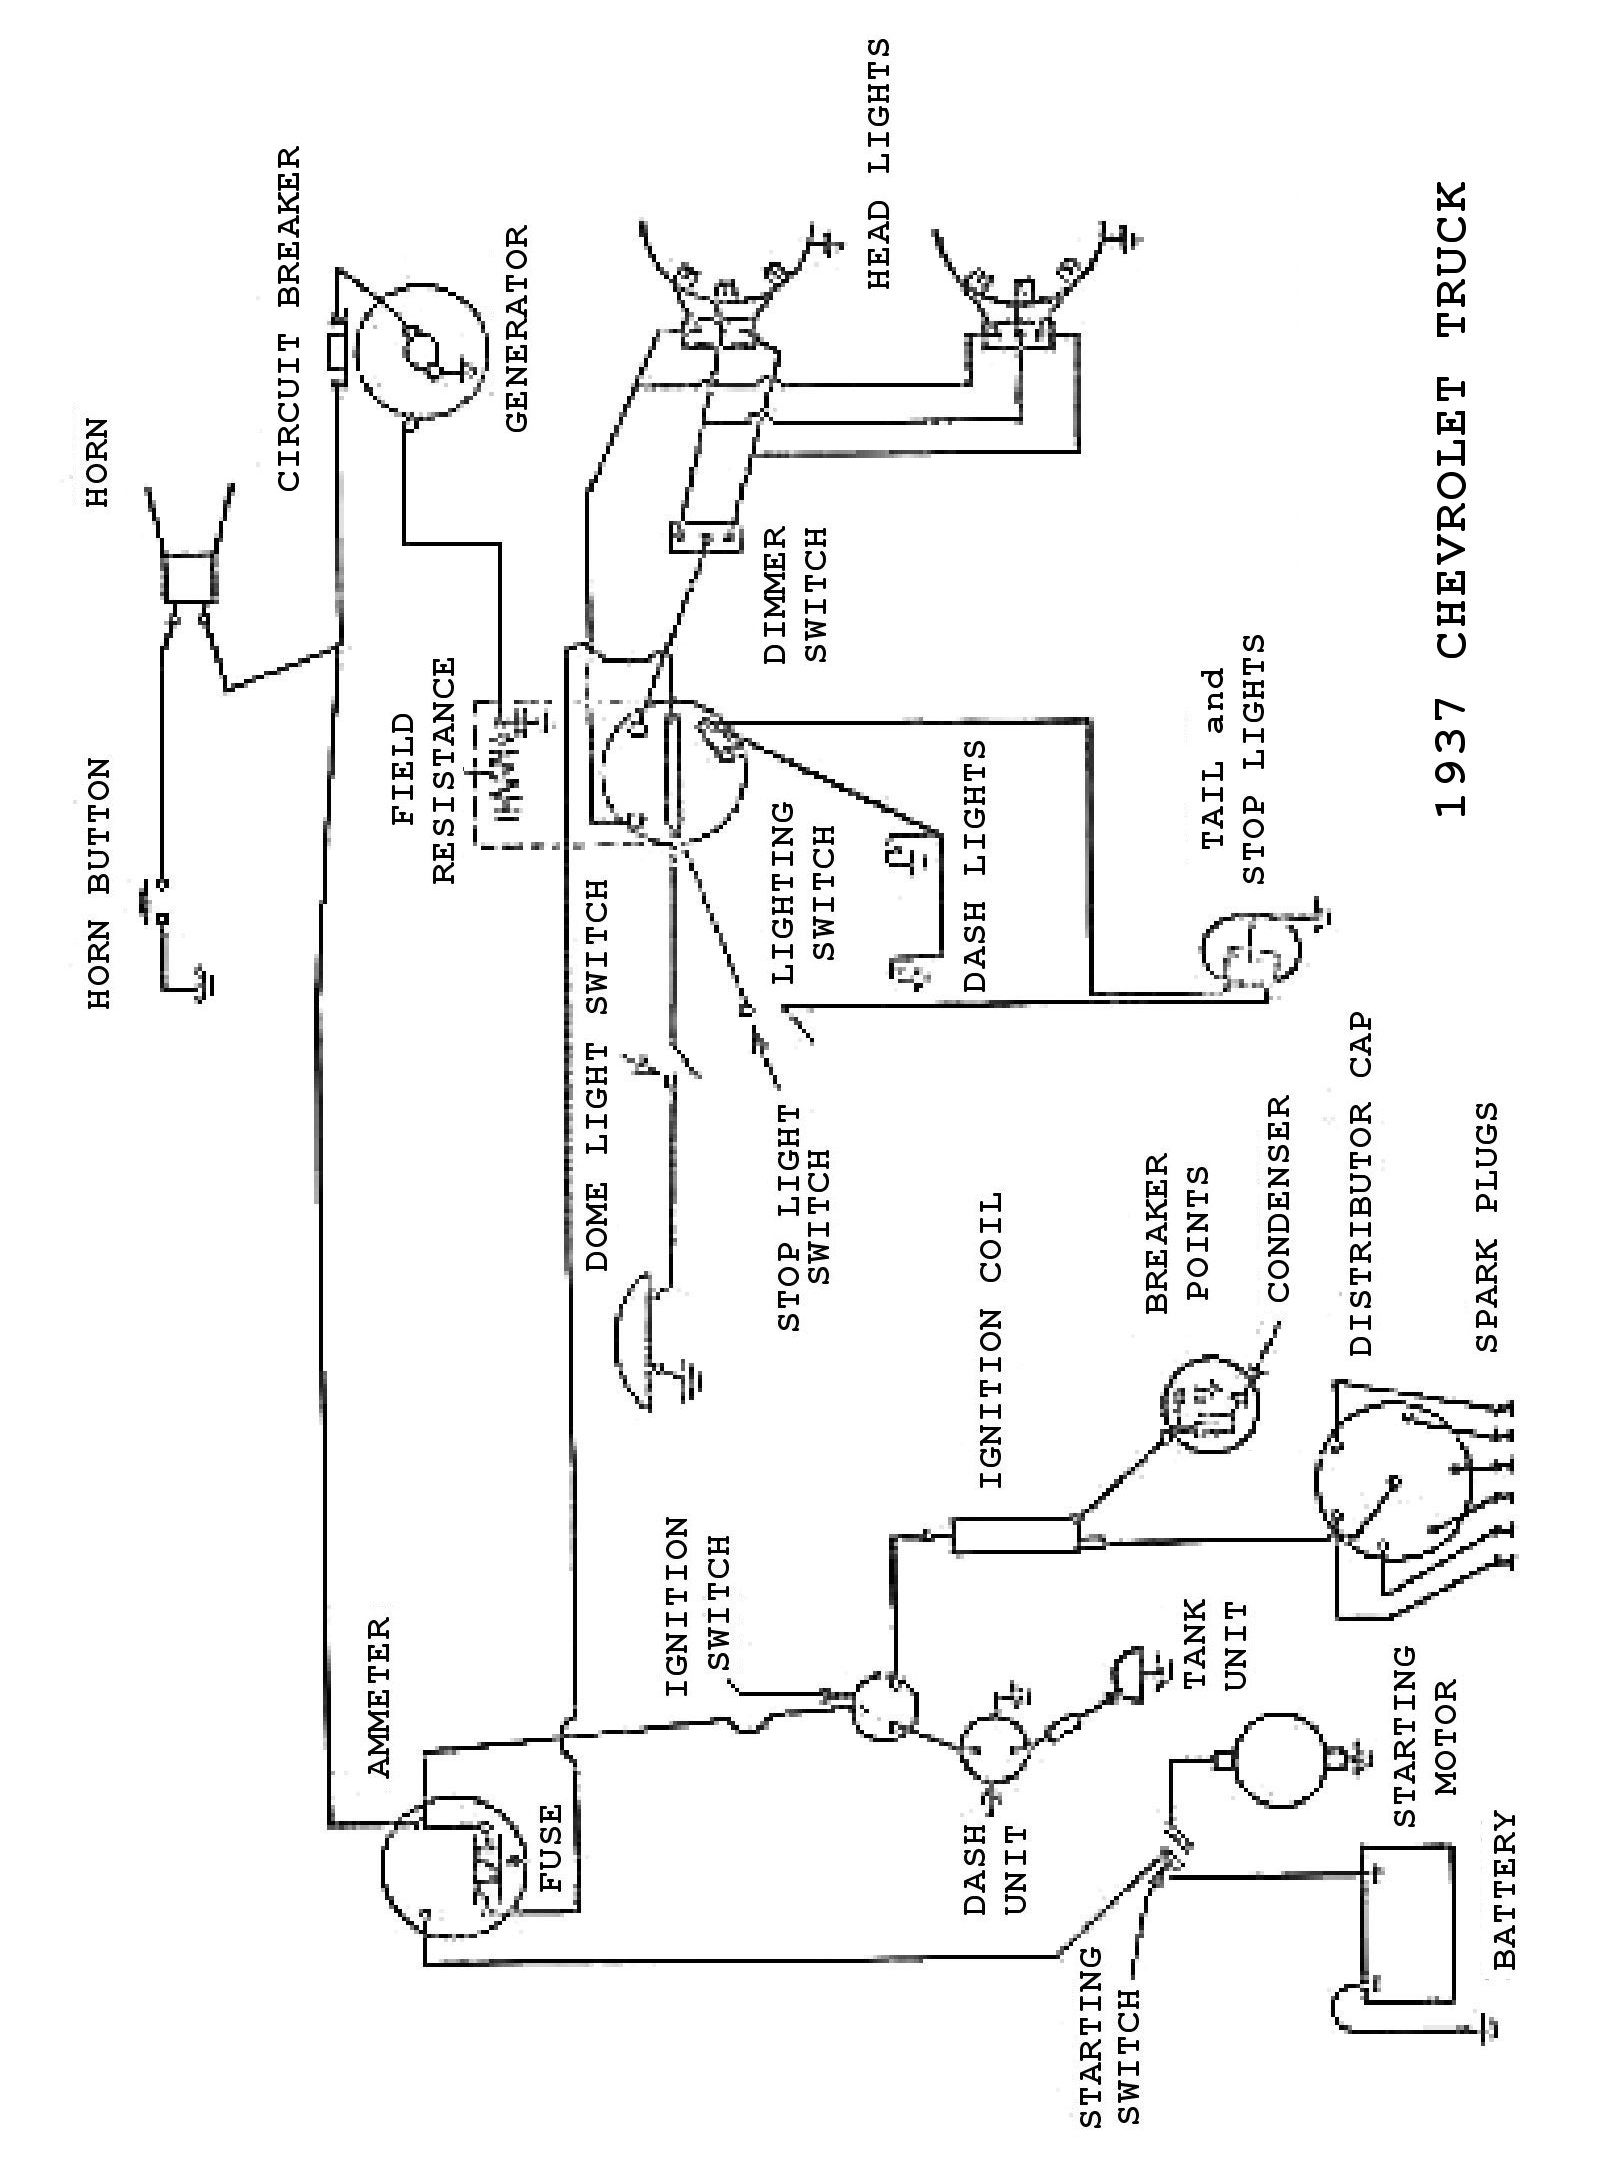 37truck chevy wiring diagrams 53 ford wiring diagram at bayanpartner.co